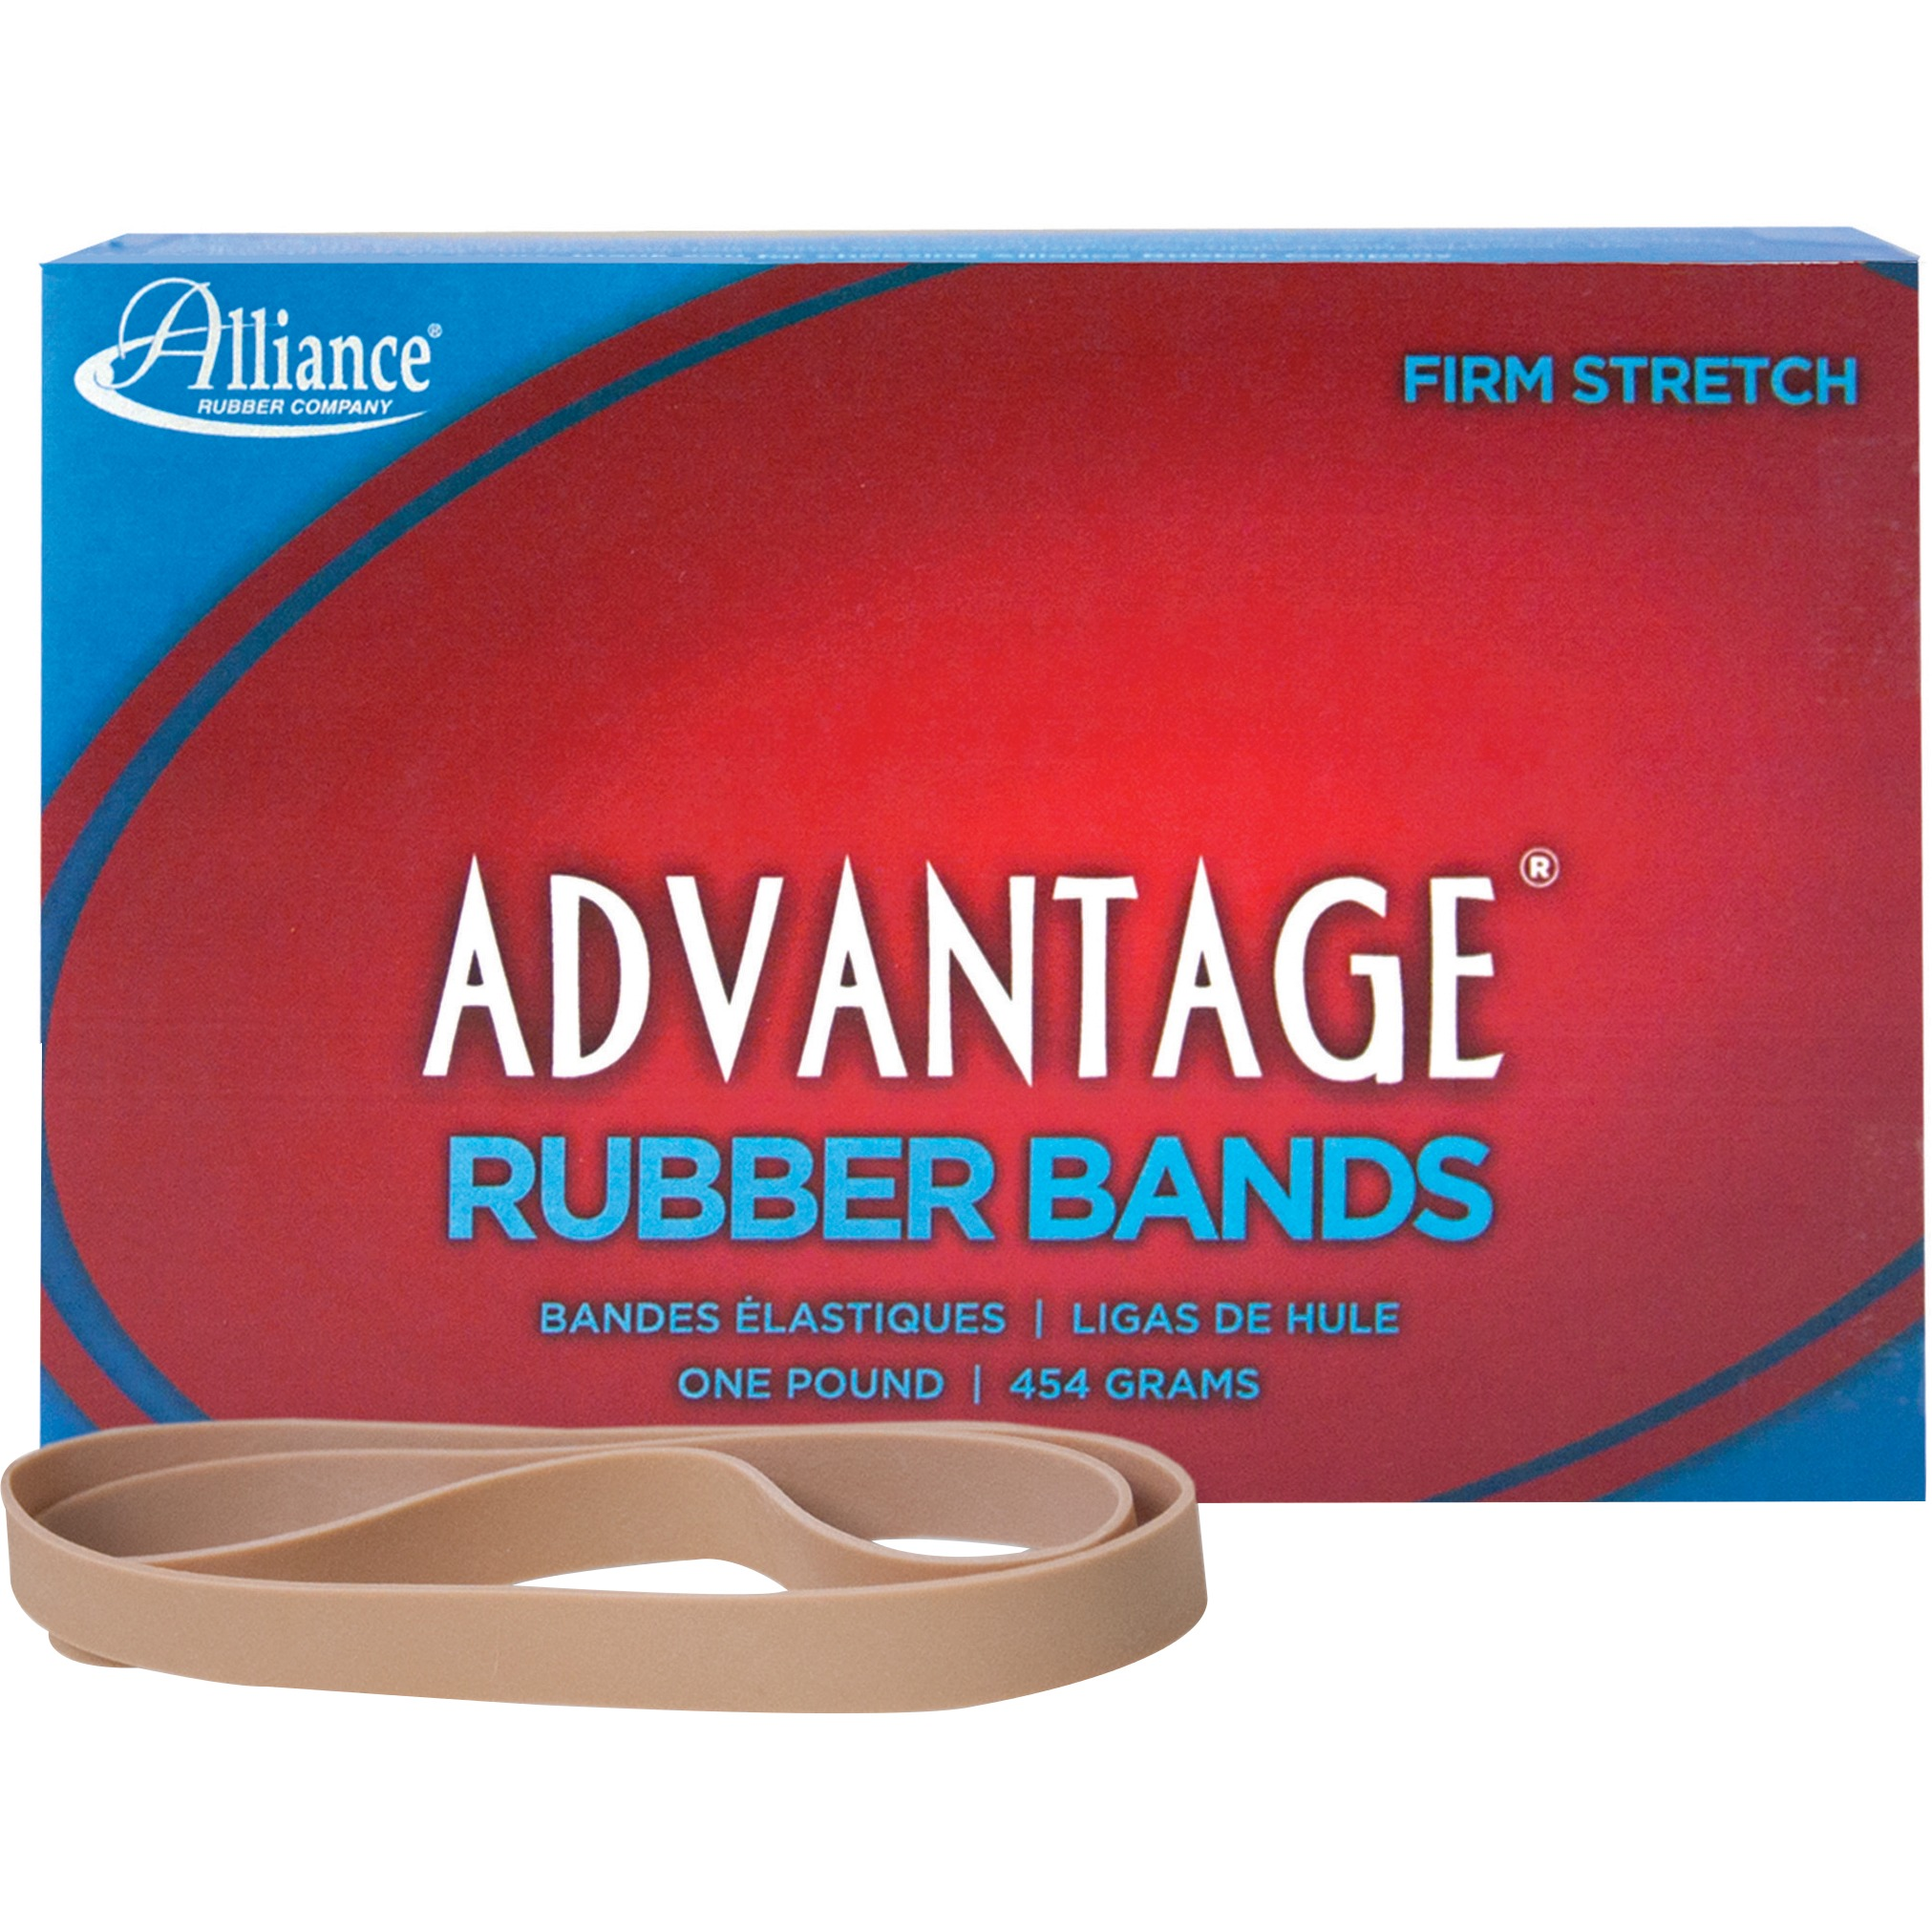 "Alliance, Advantage Rubber Bands, #107, 7"" x 5/8"", 1 lb. box"